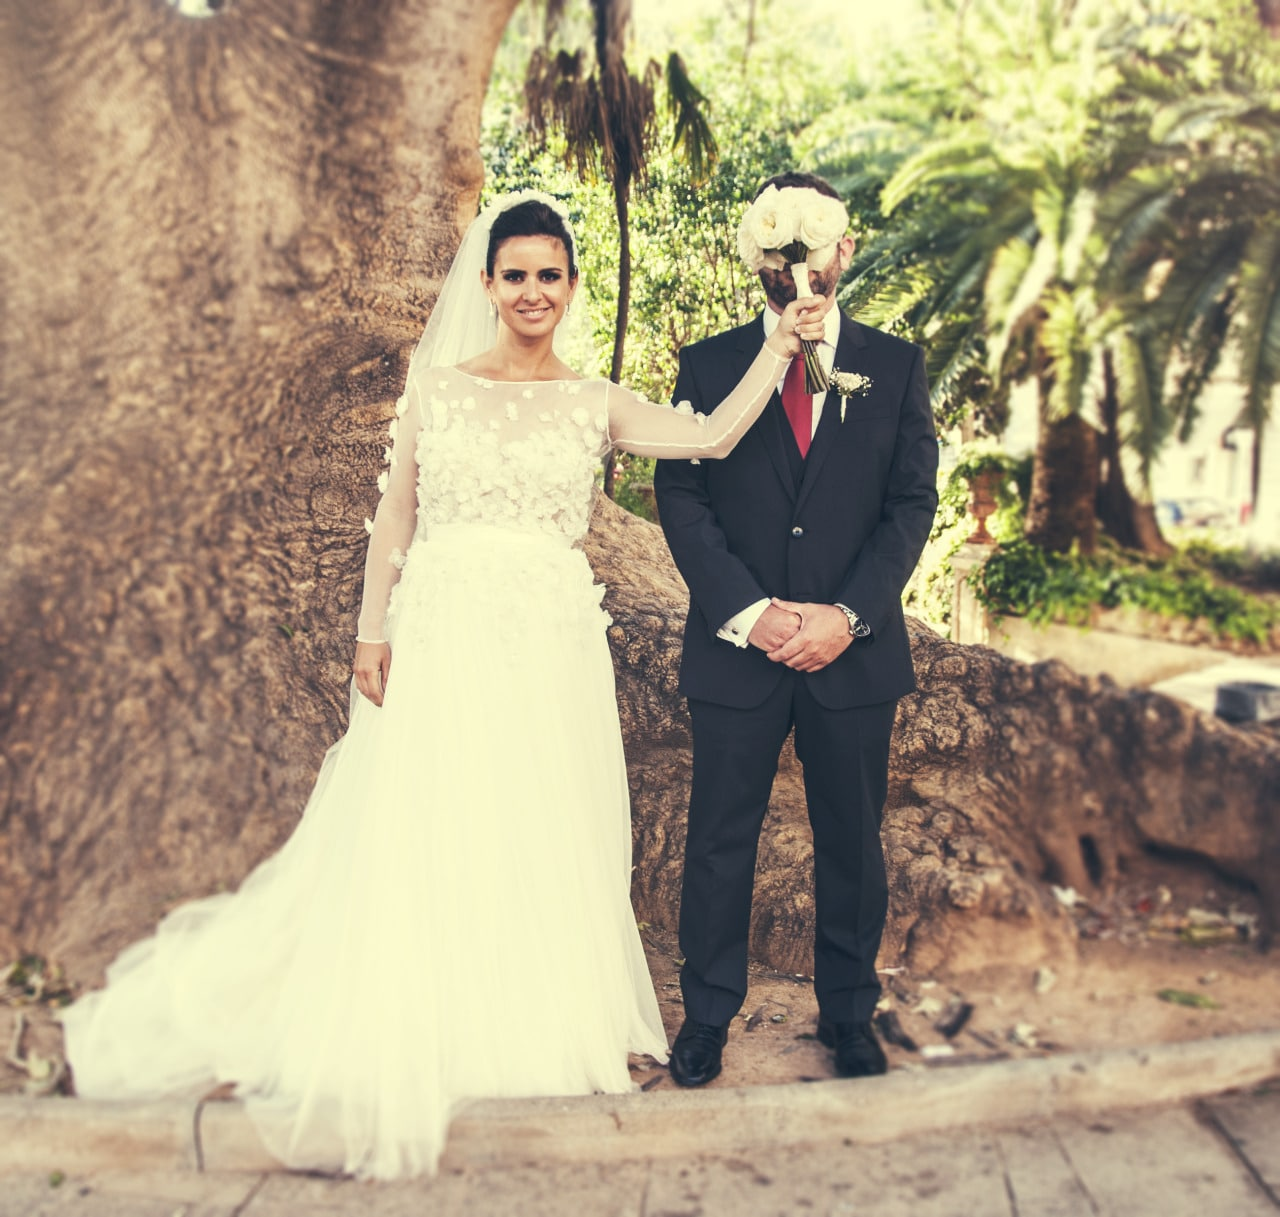 Wedding photographer in Mallorca funny